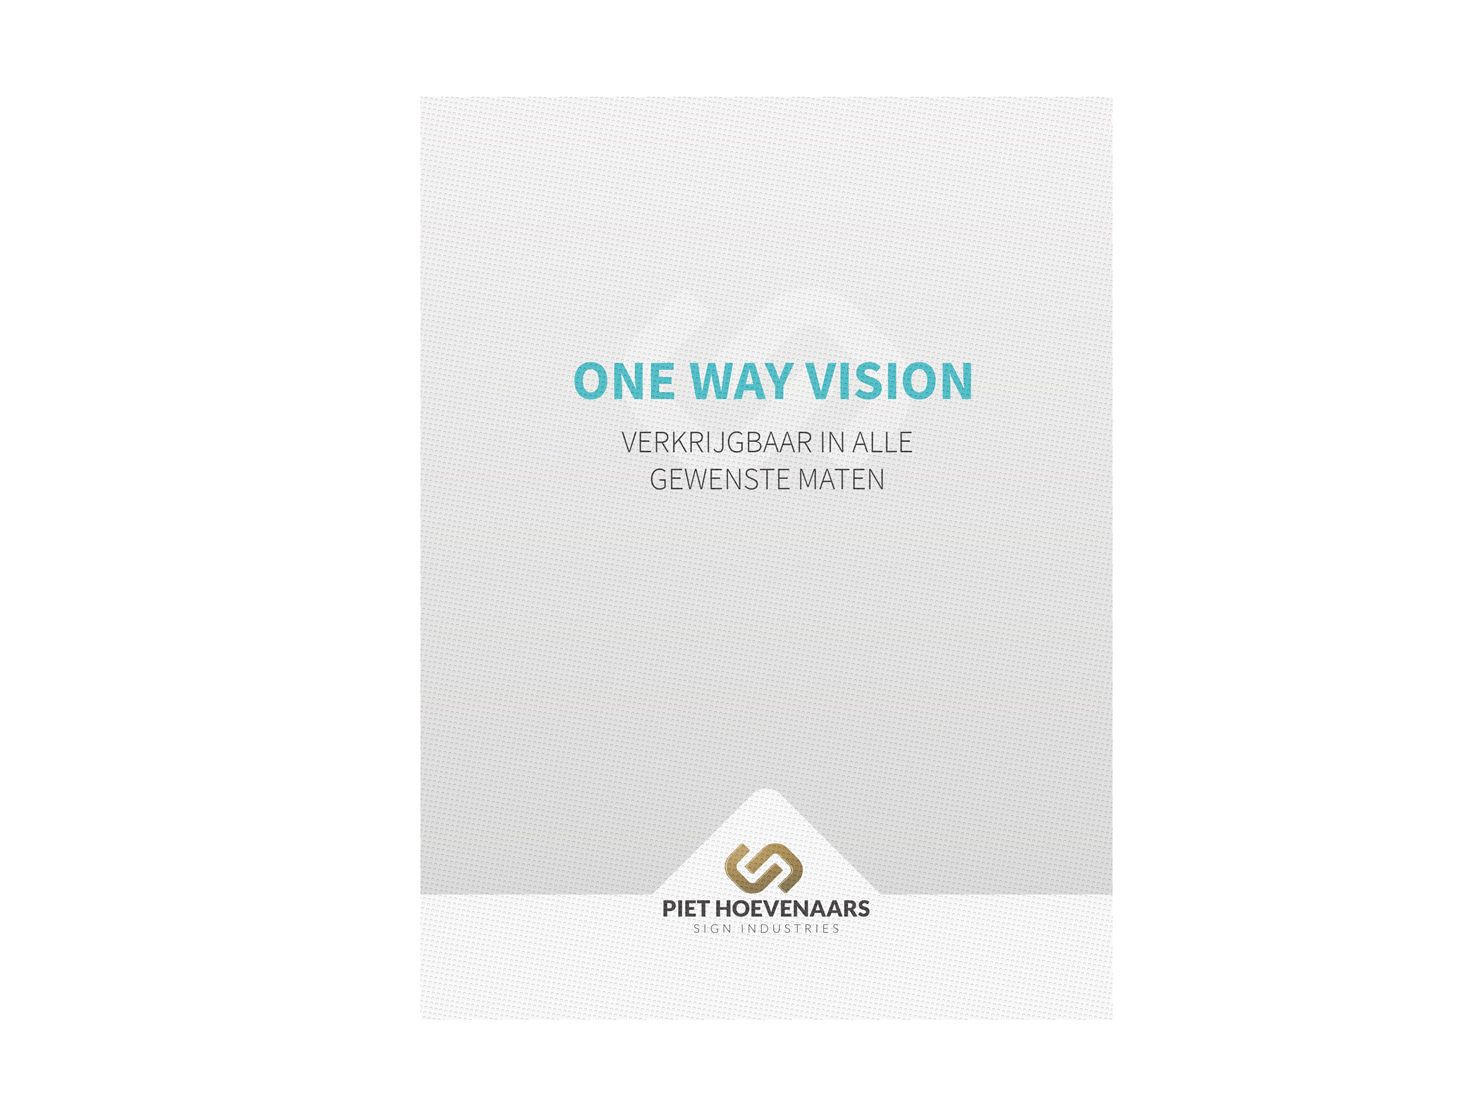 One Way Vision-Buitenzijde raam-One Way Vision